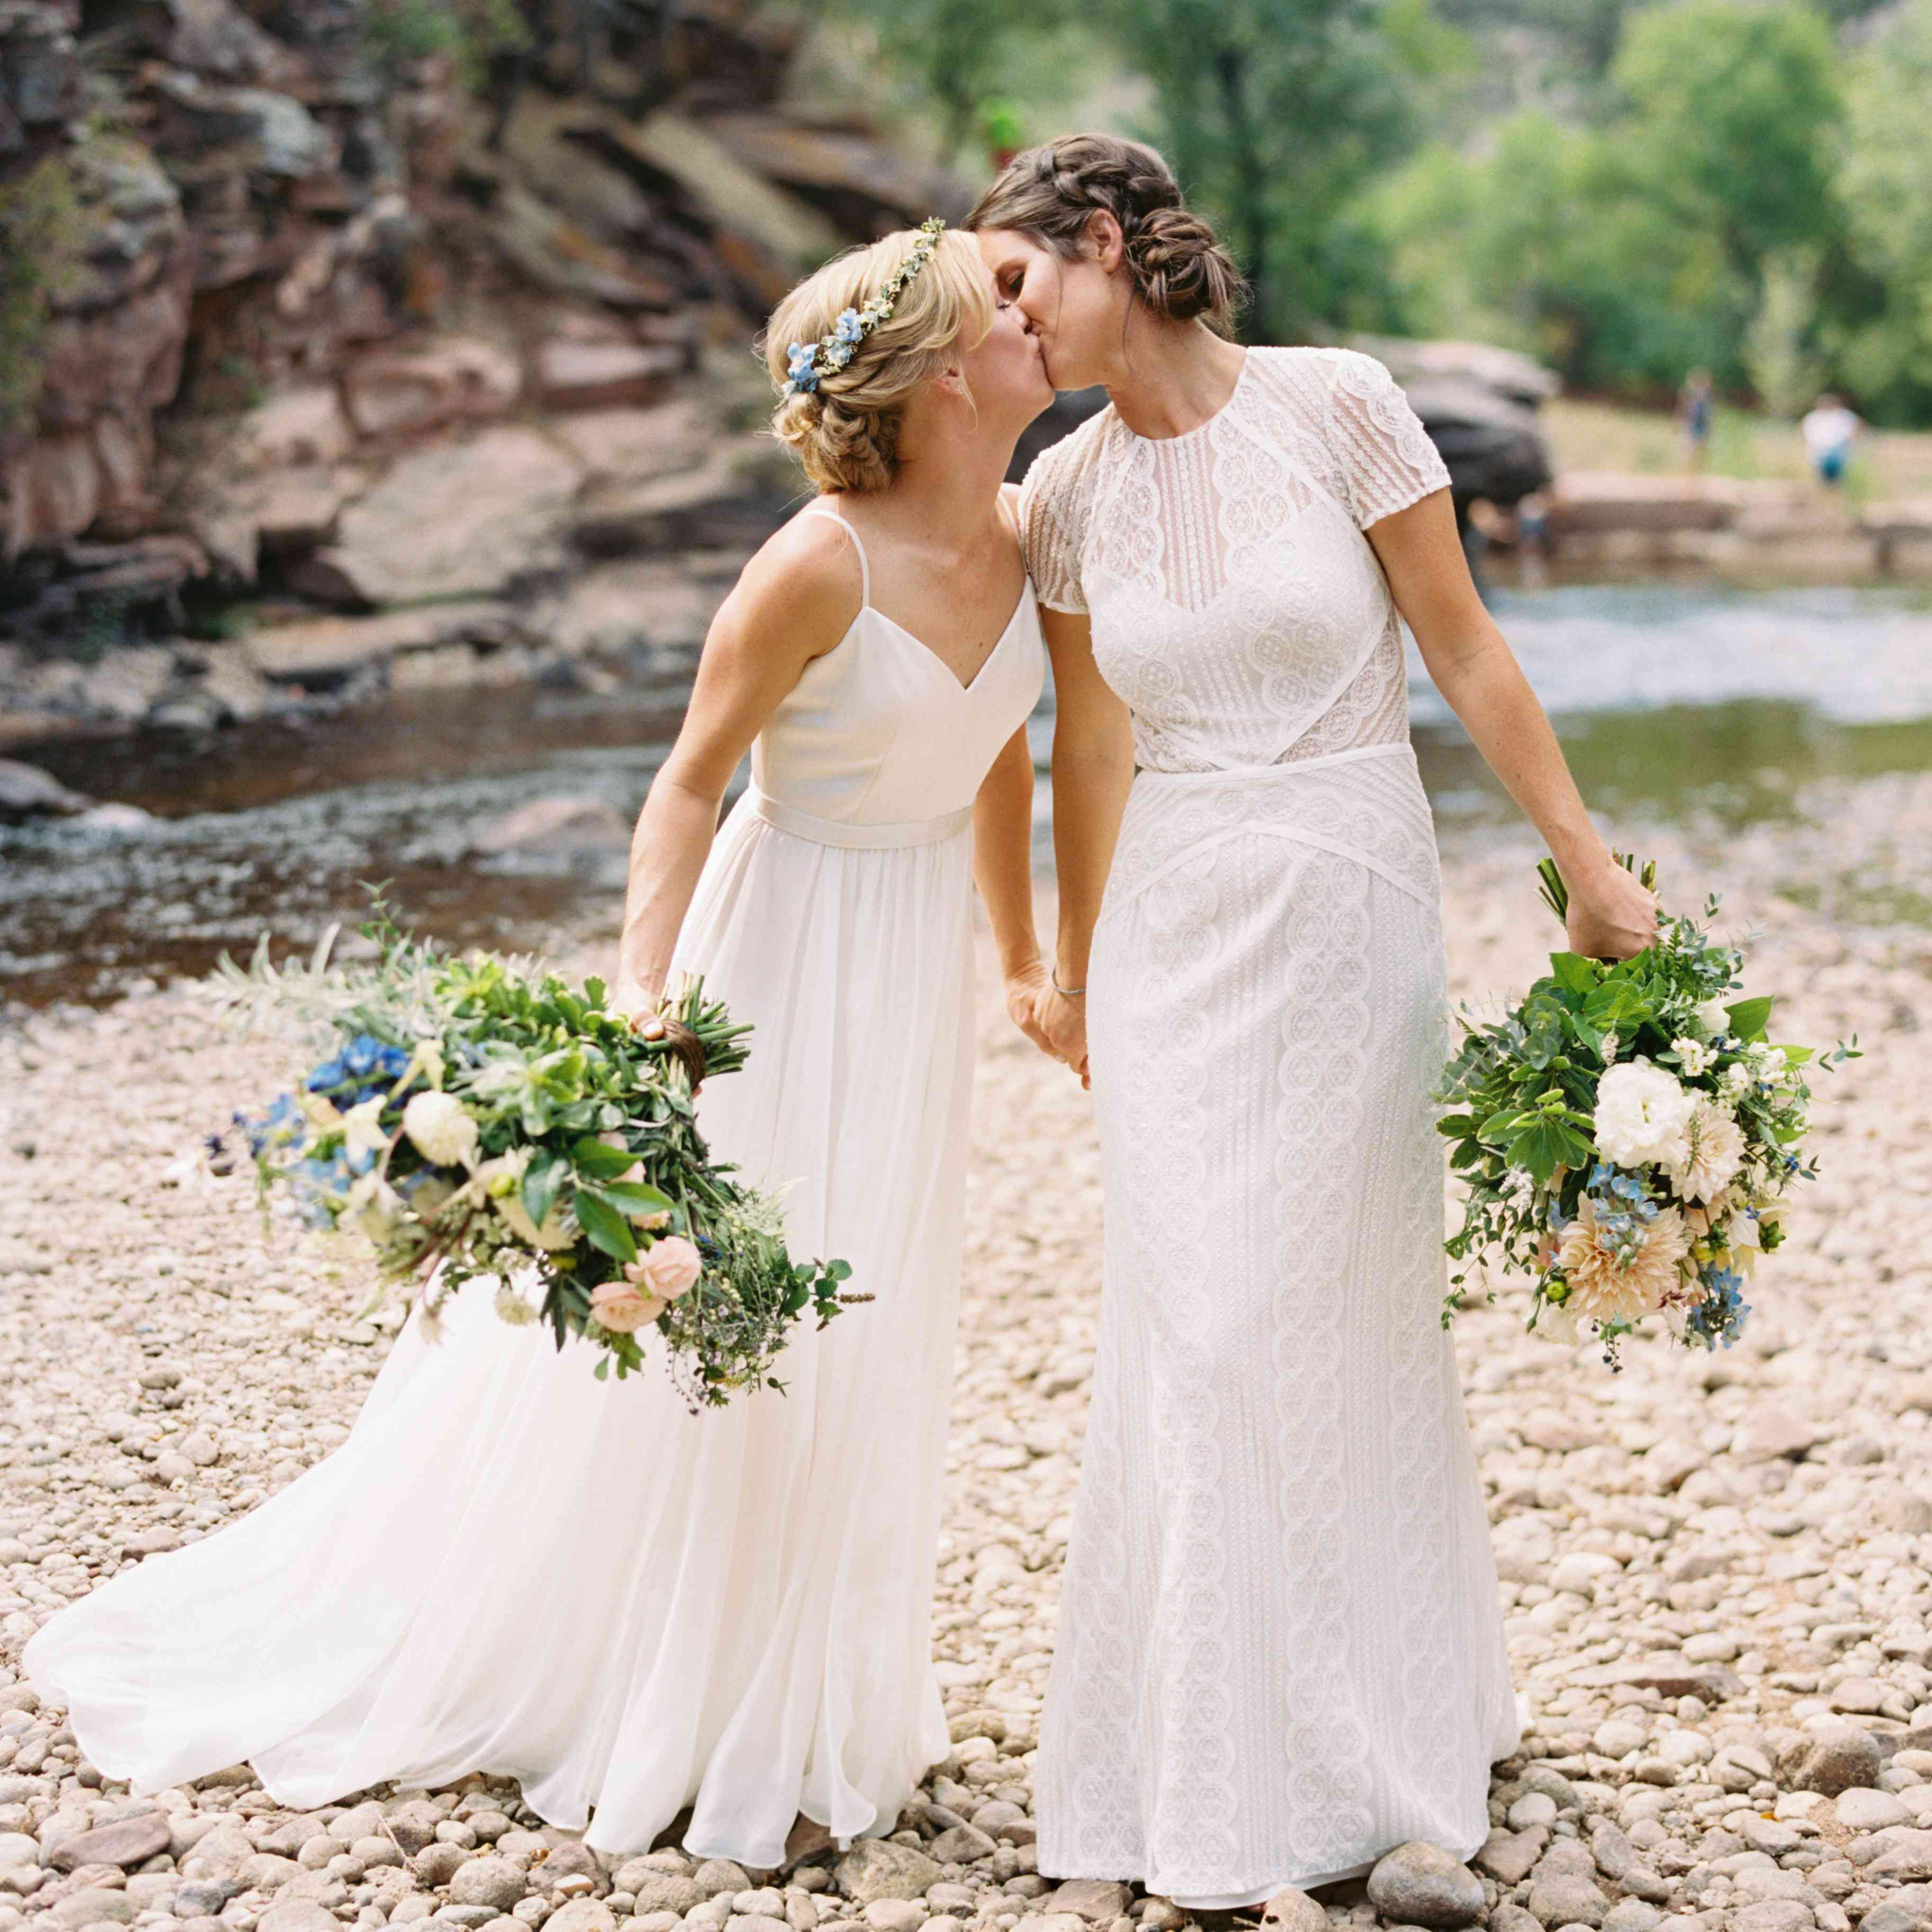 Gallery Prettiest Real Bride Wedding Hairstyles: 39 Same-Sex Wedding Photos That Will Give You All The